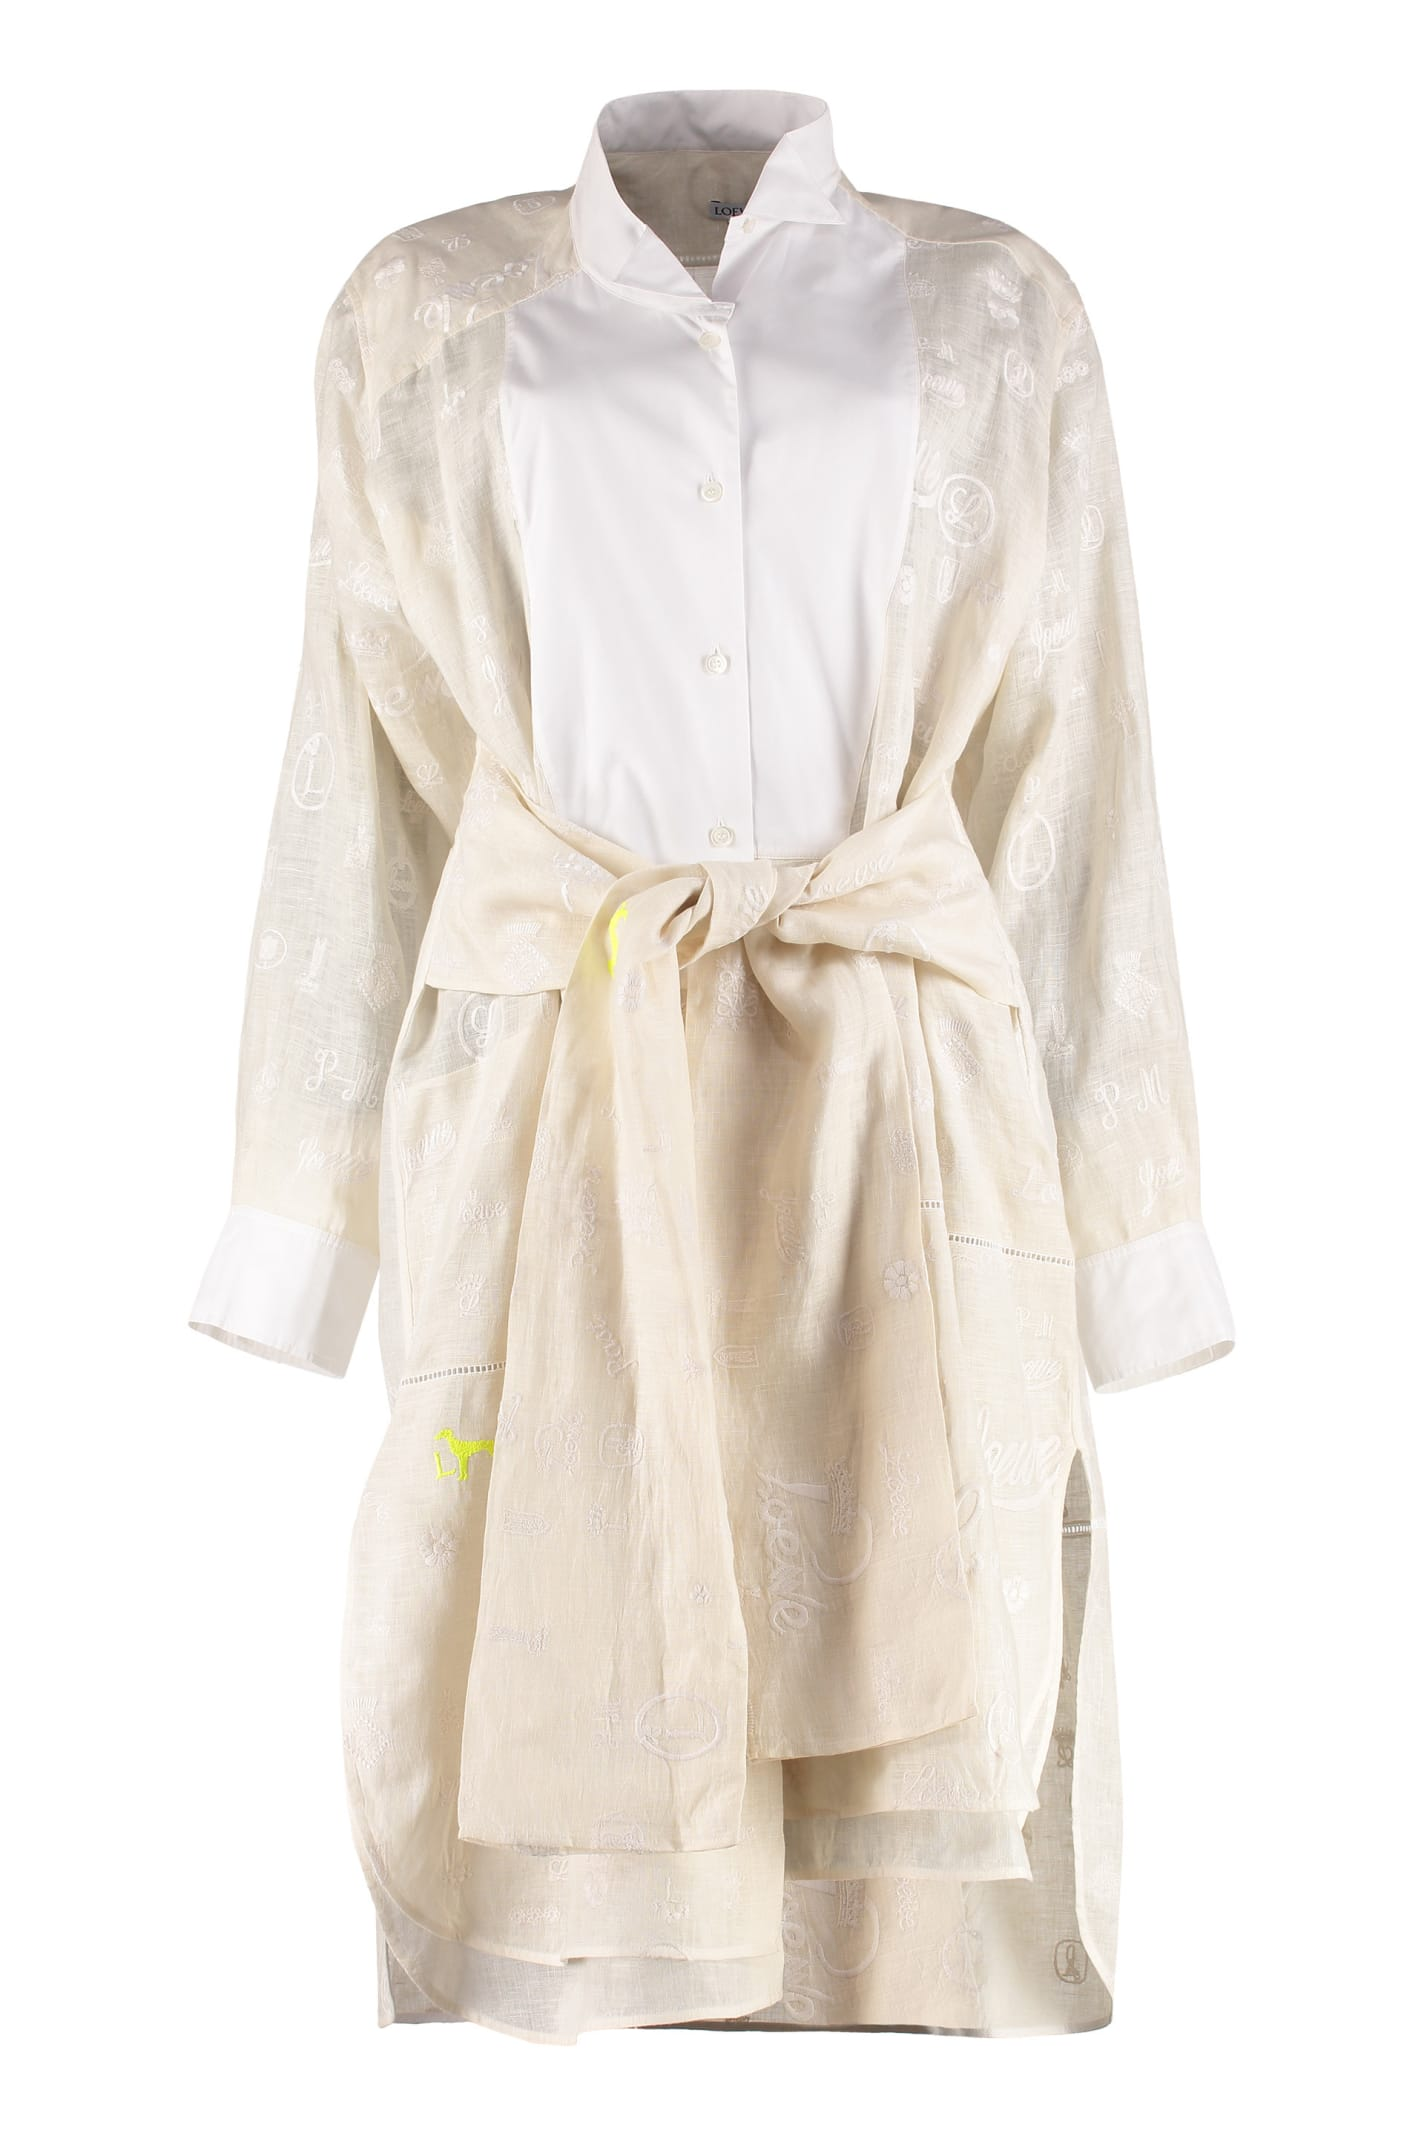 Loewe Embroidered Linen Shirtdress